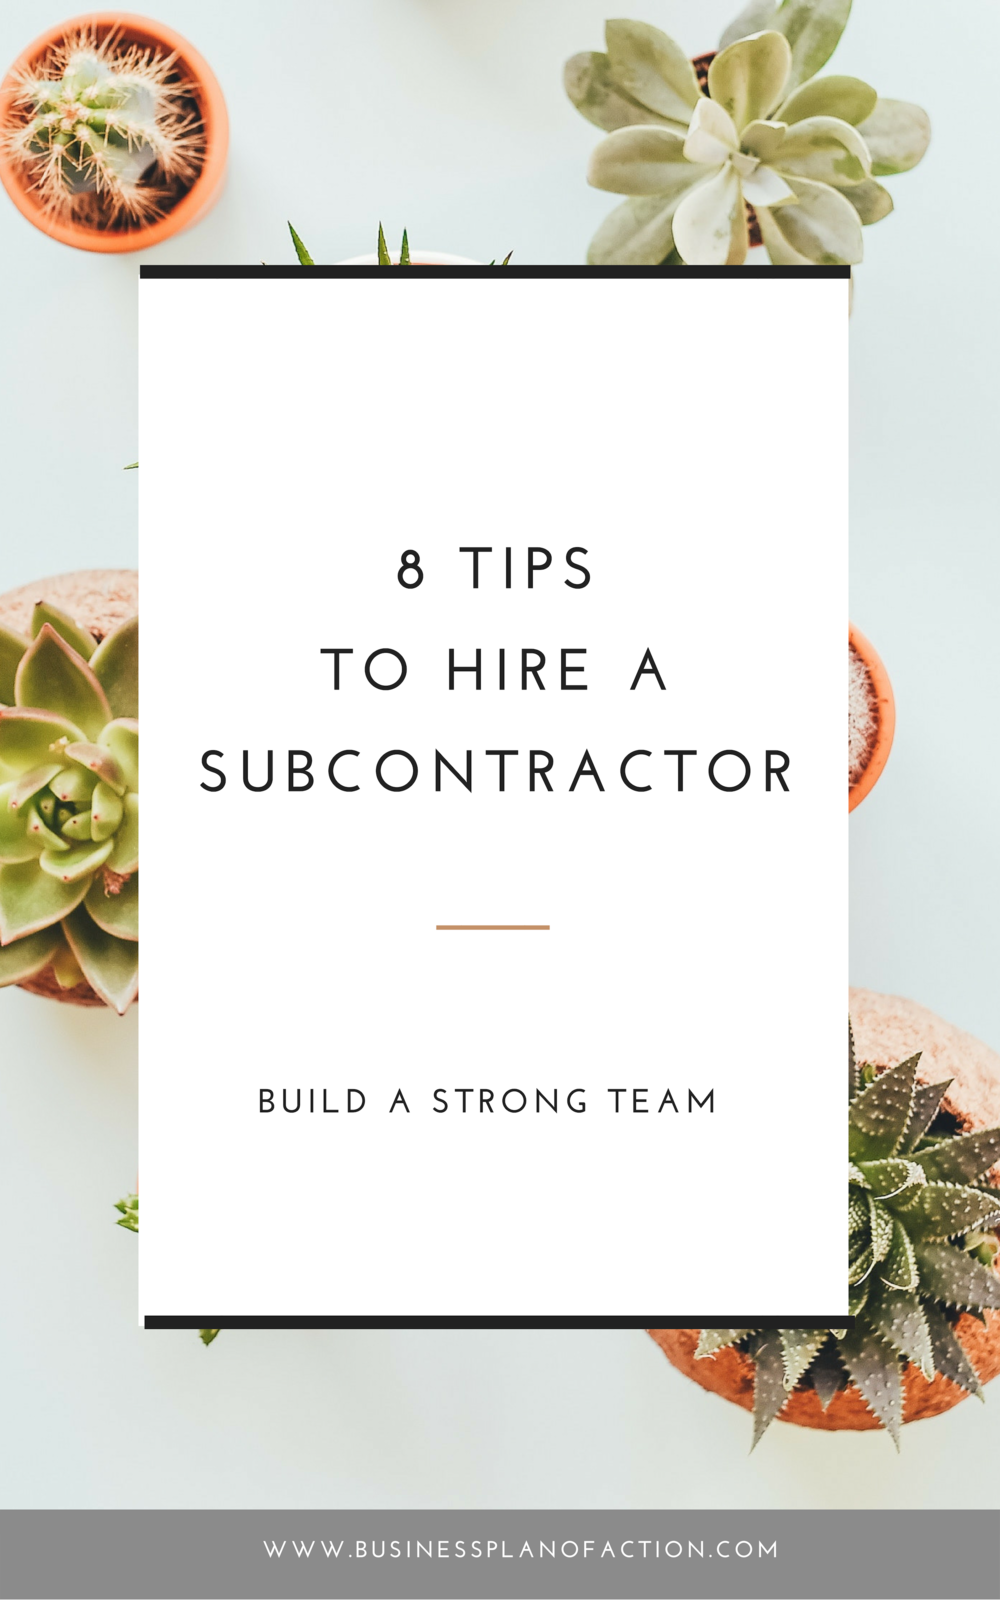 8 Tips to hire a subcontractor.png